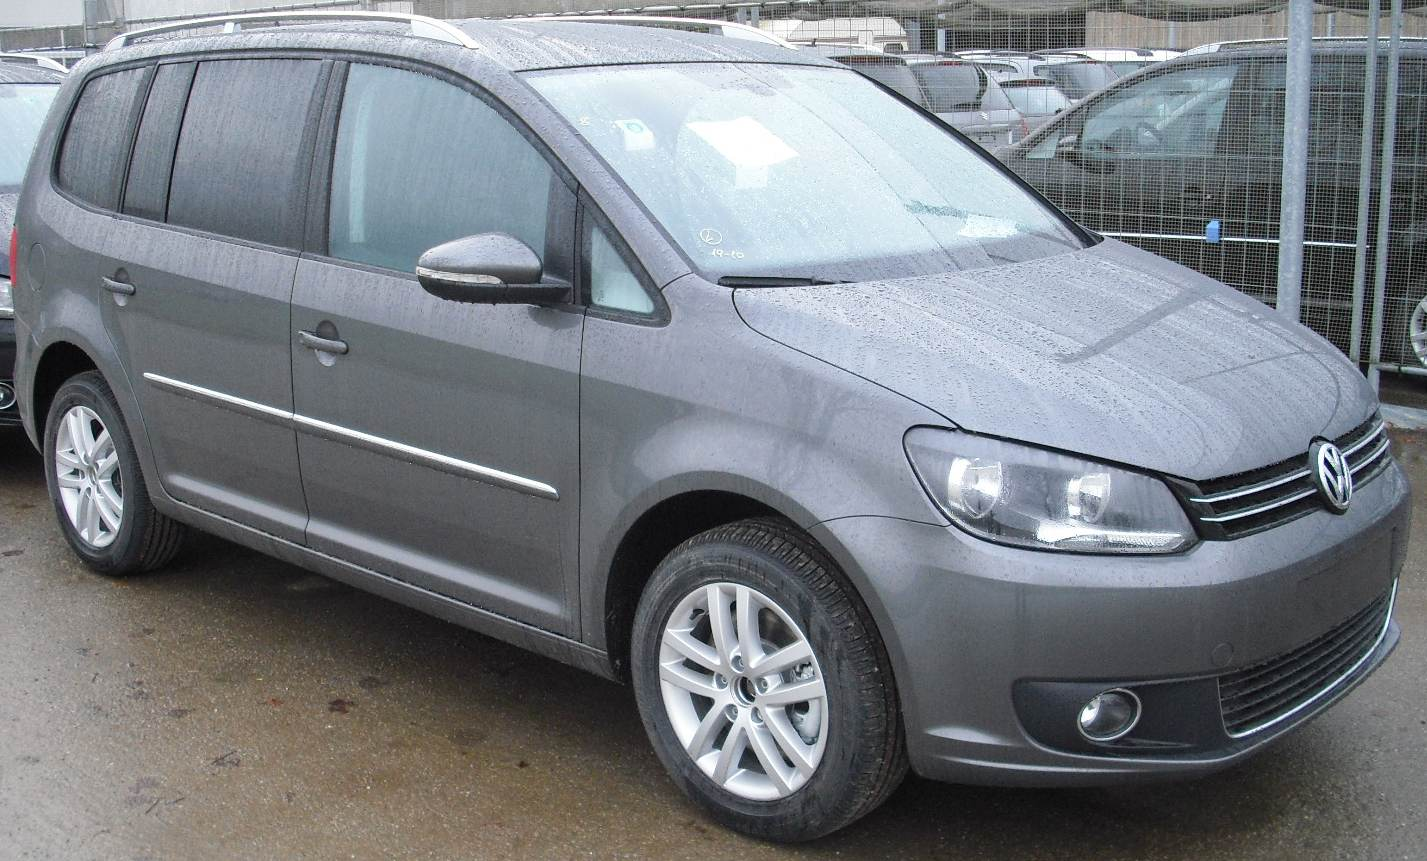 Volkswagen Touran 2011 photo - 1